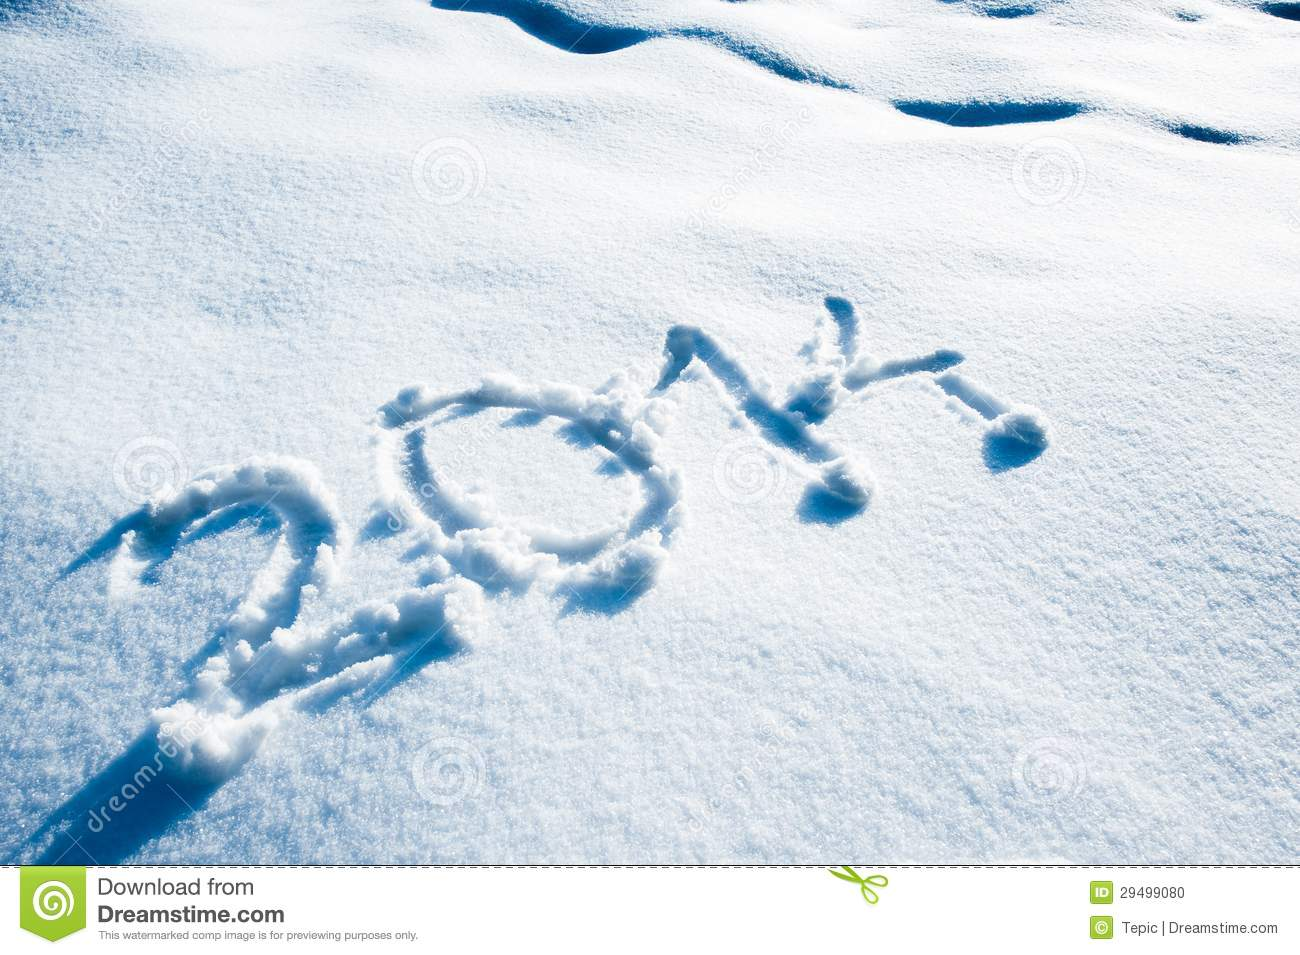 2014 On The Snow Royalty Free Stock Photography - Image: 25503997